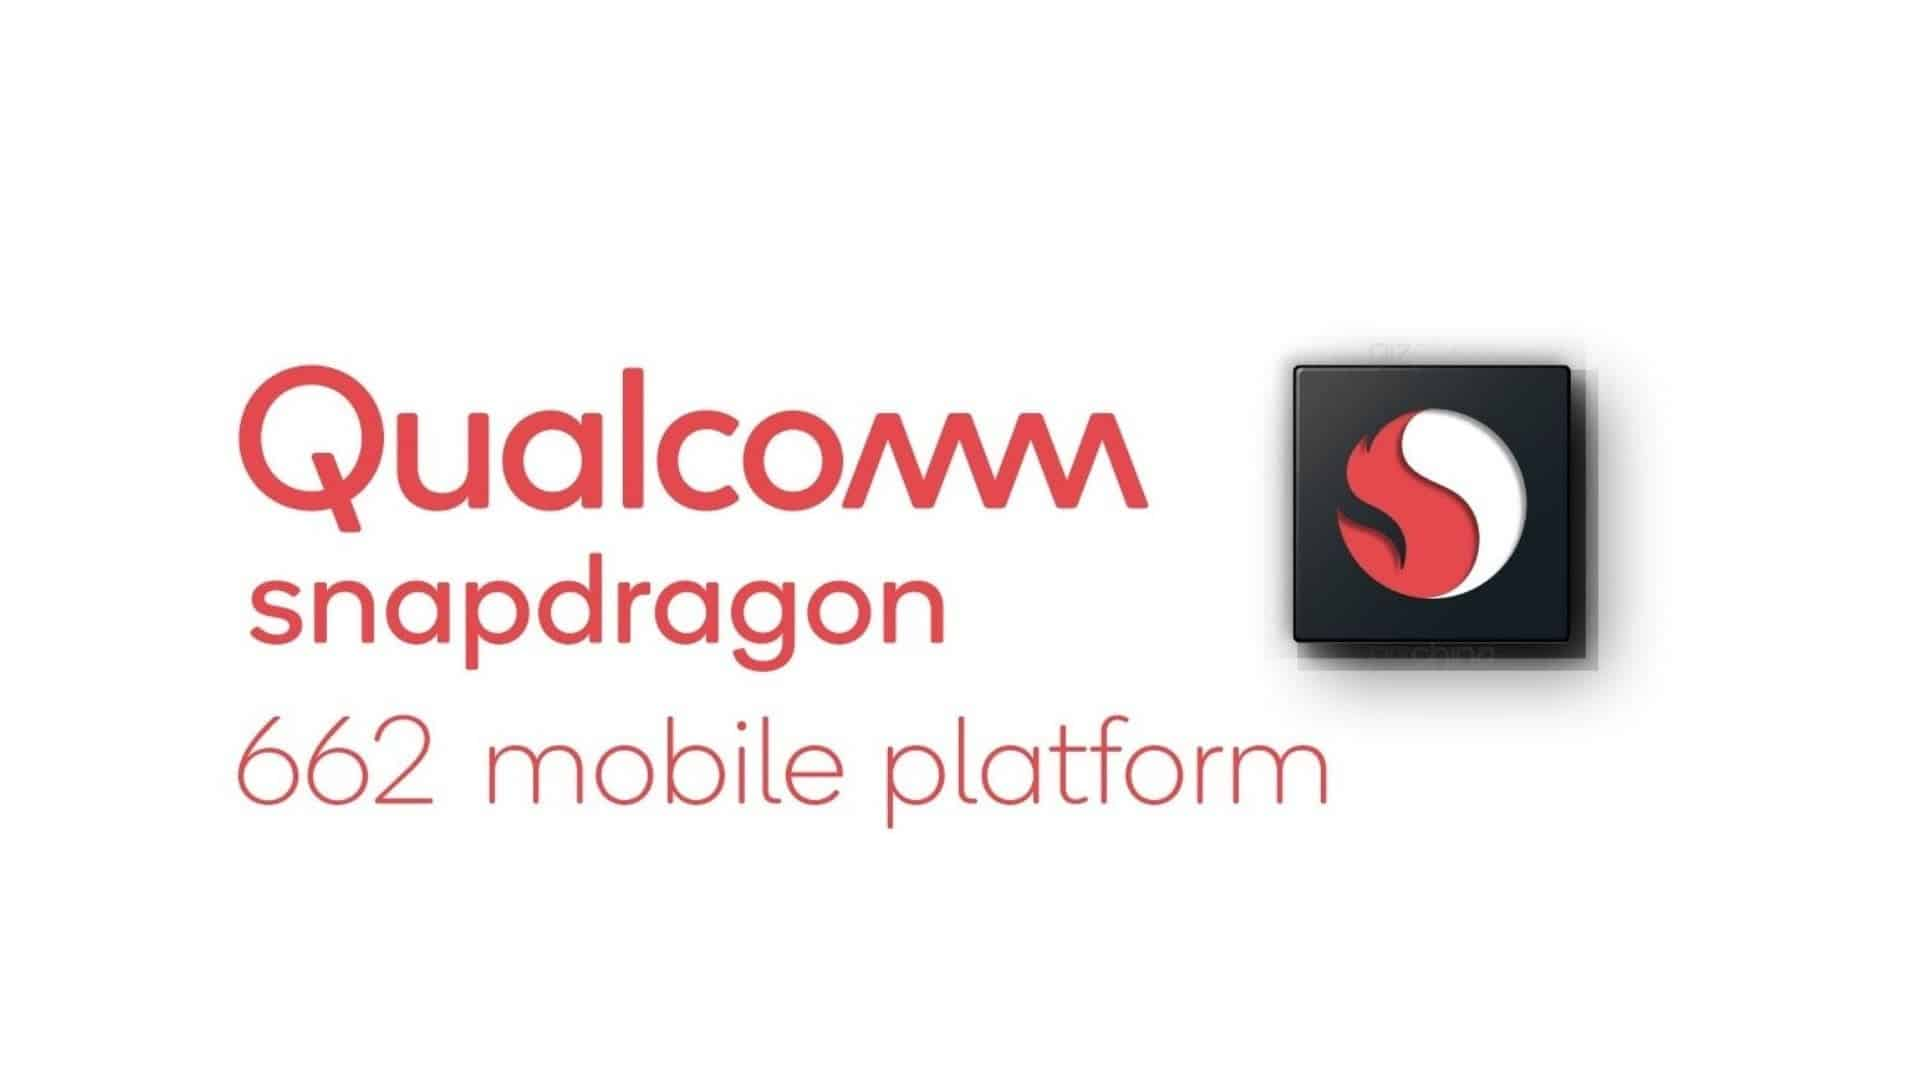 Qualcomm Snapdragon 662 Snapdragon 460